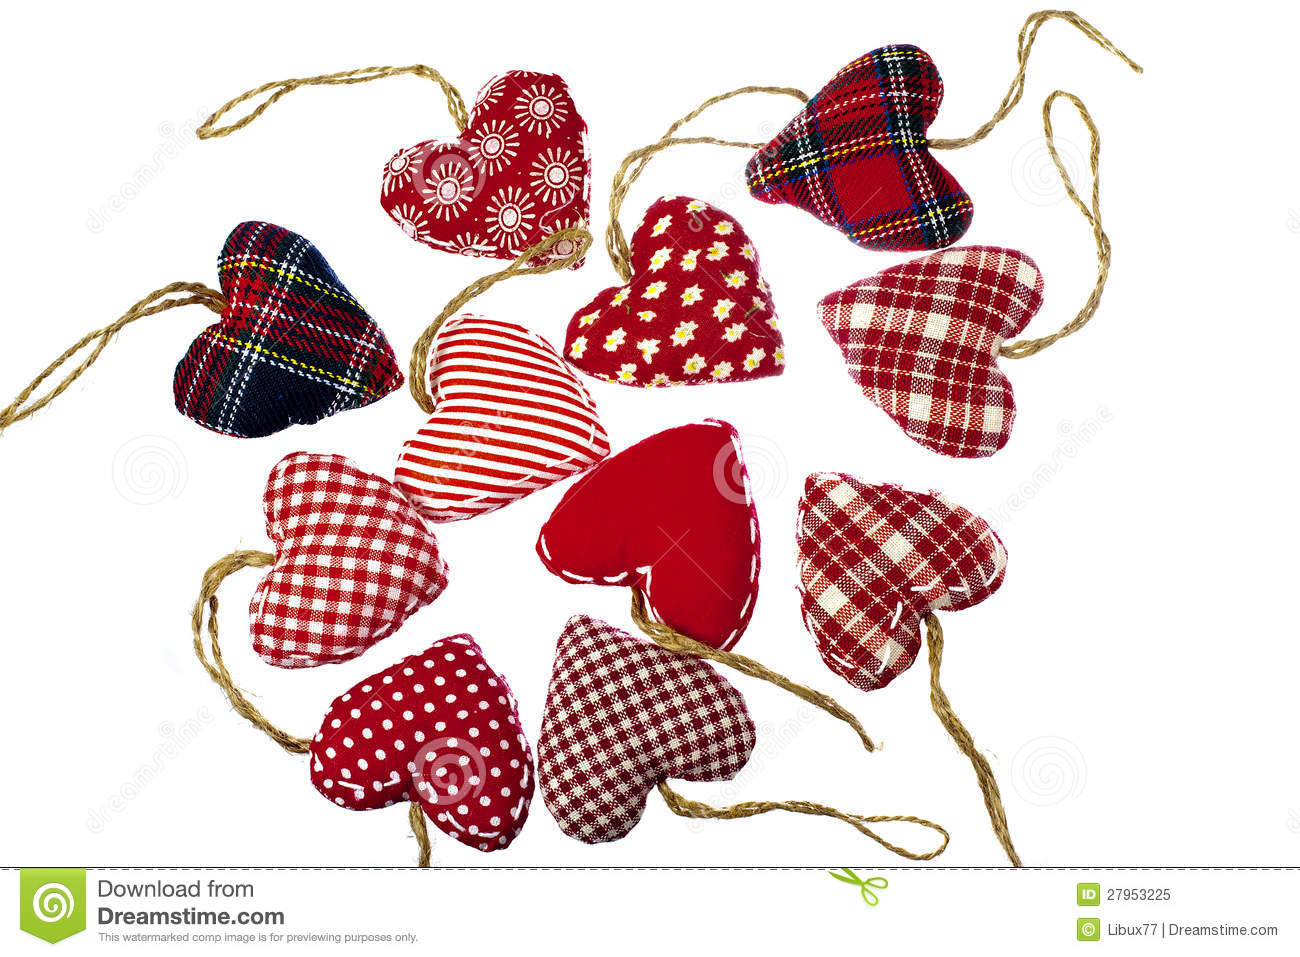 Christmas Tree Hearts Decorations Royalty Free Stock Photo - Image ...